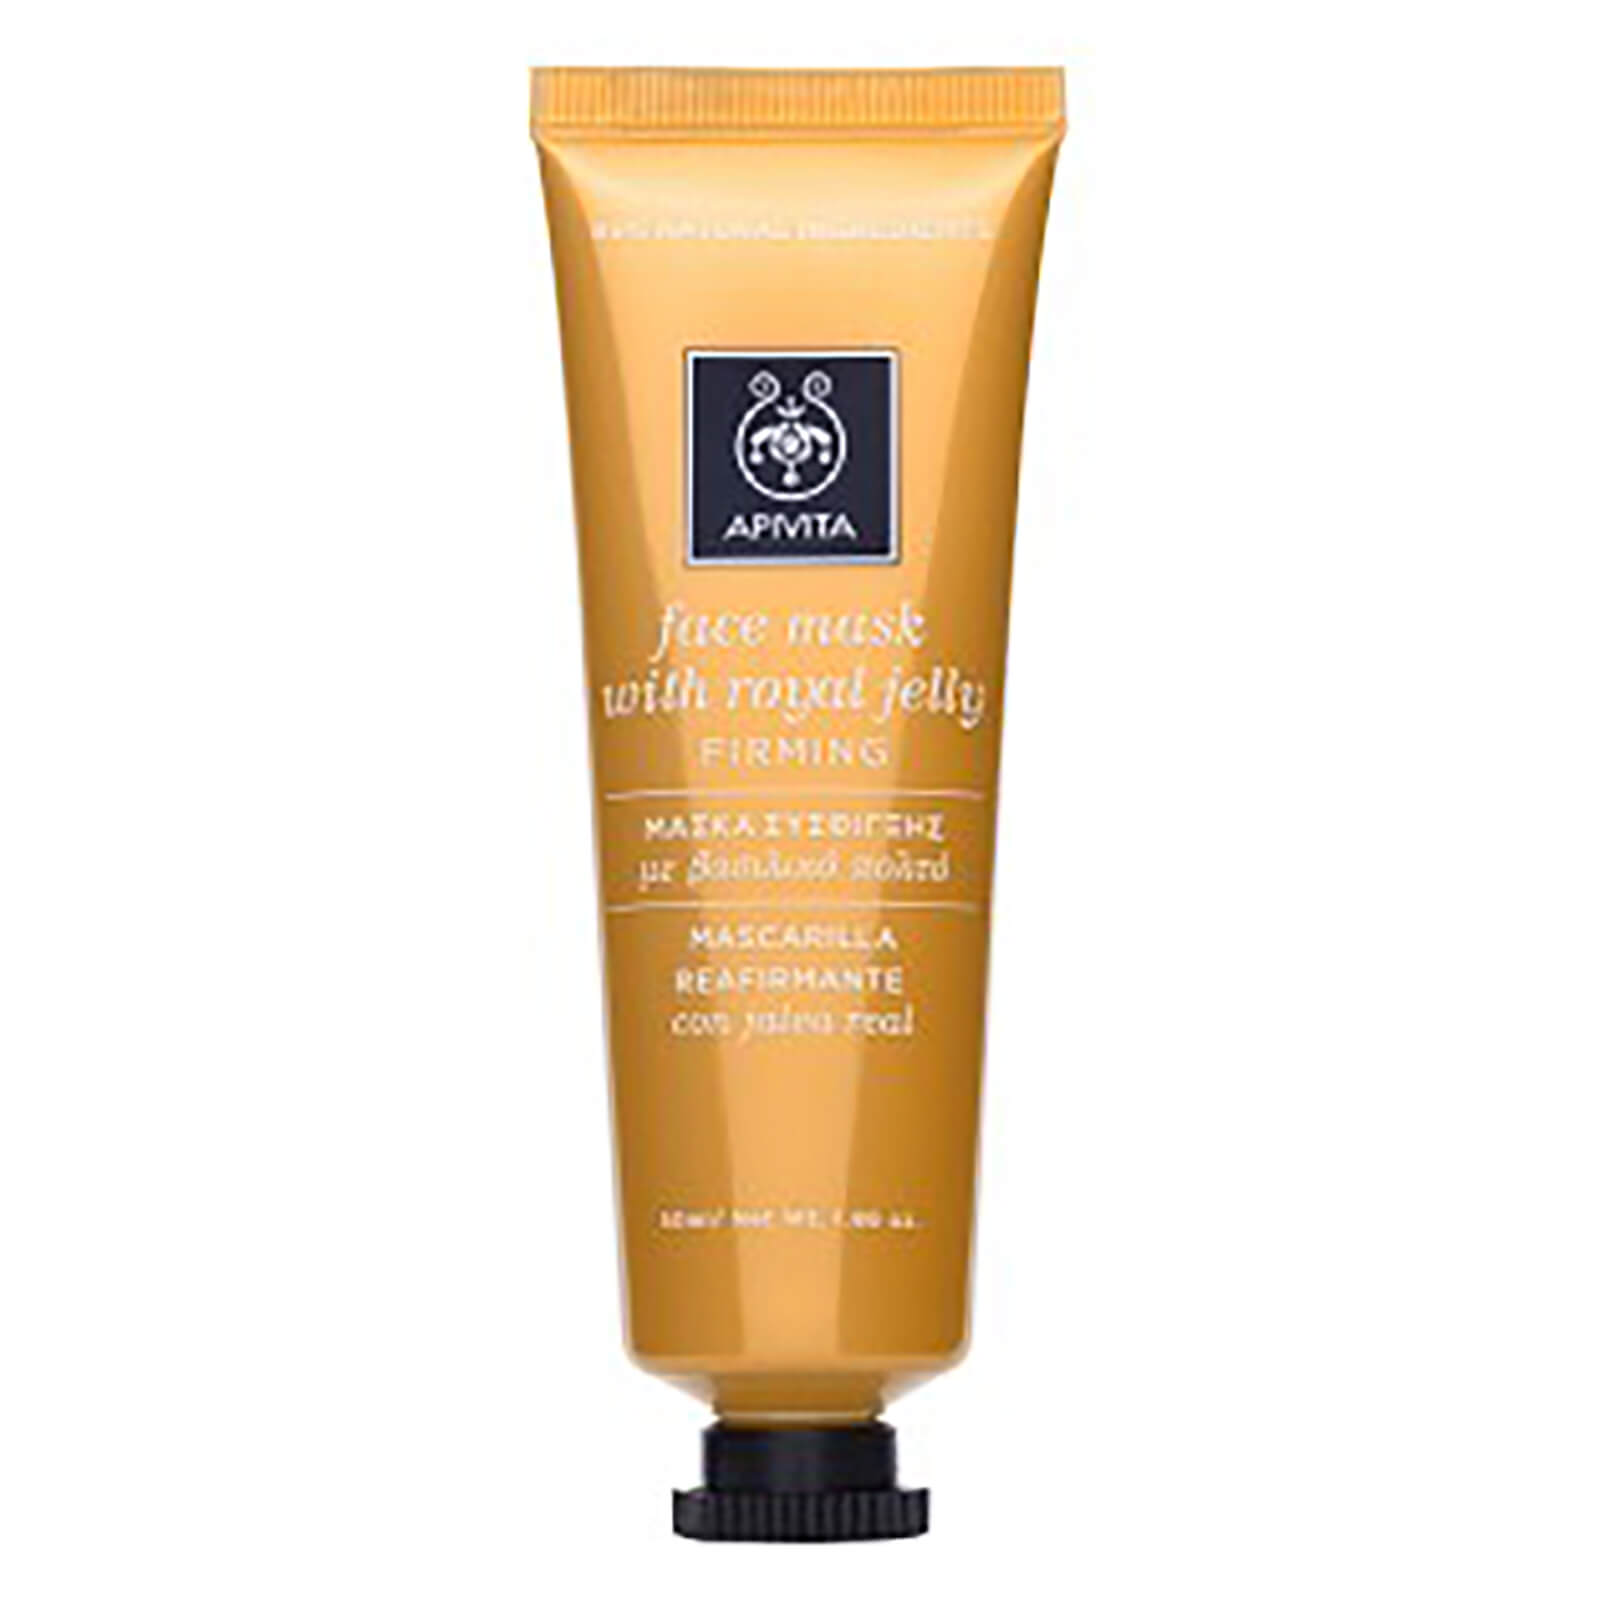 APIVITA Firming Face Mask - Royal Jelly 50ml